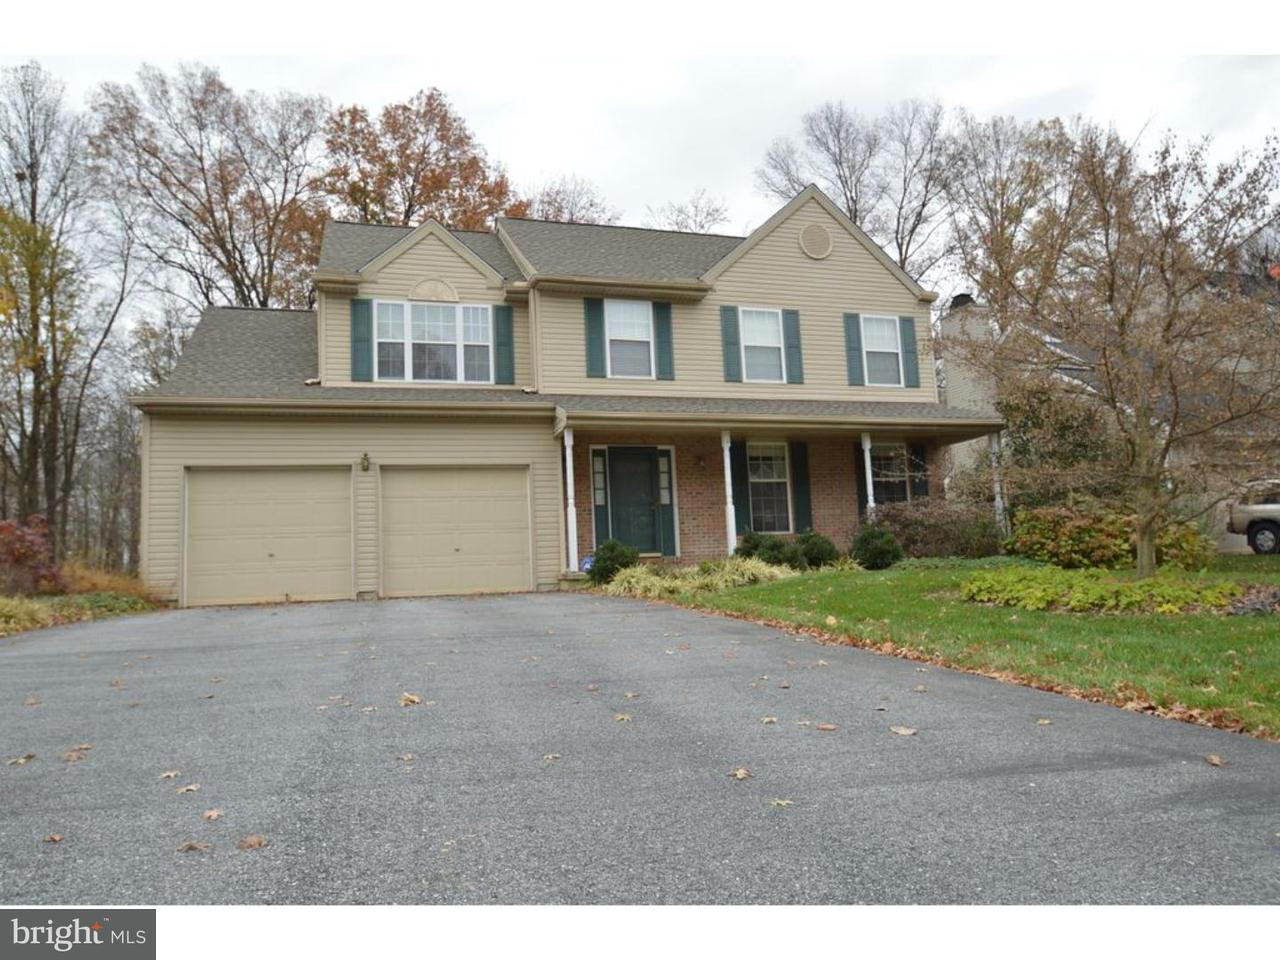 Single Family Home for Rent at 5 CHARLES PT Bear, Delaware 19702 United States